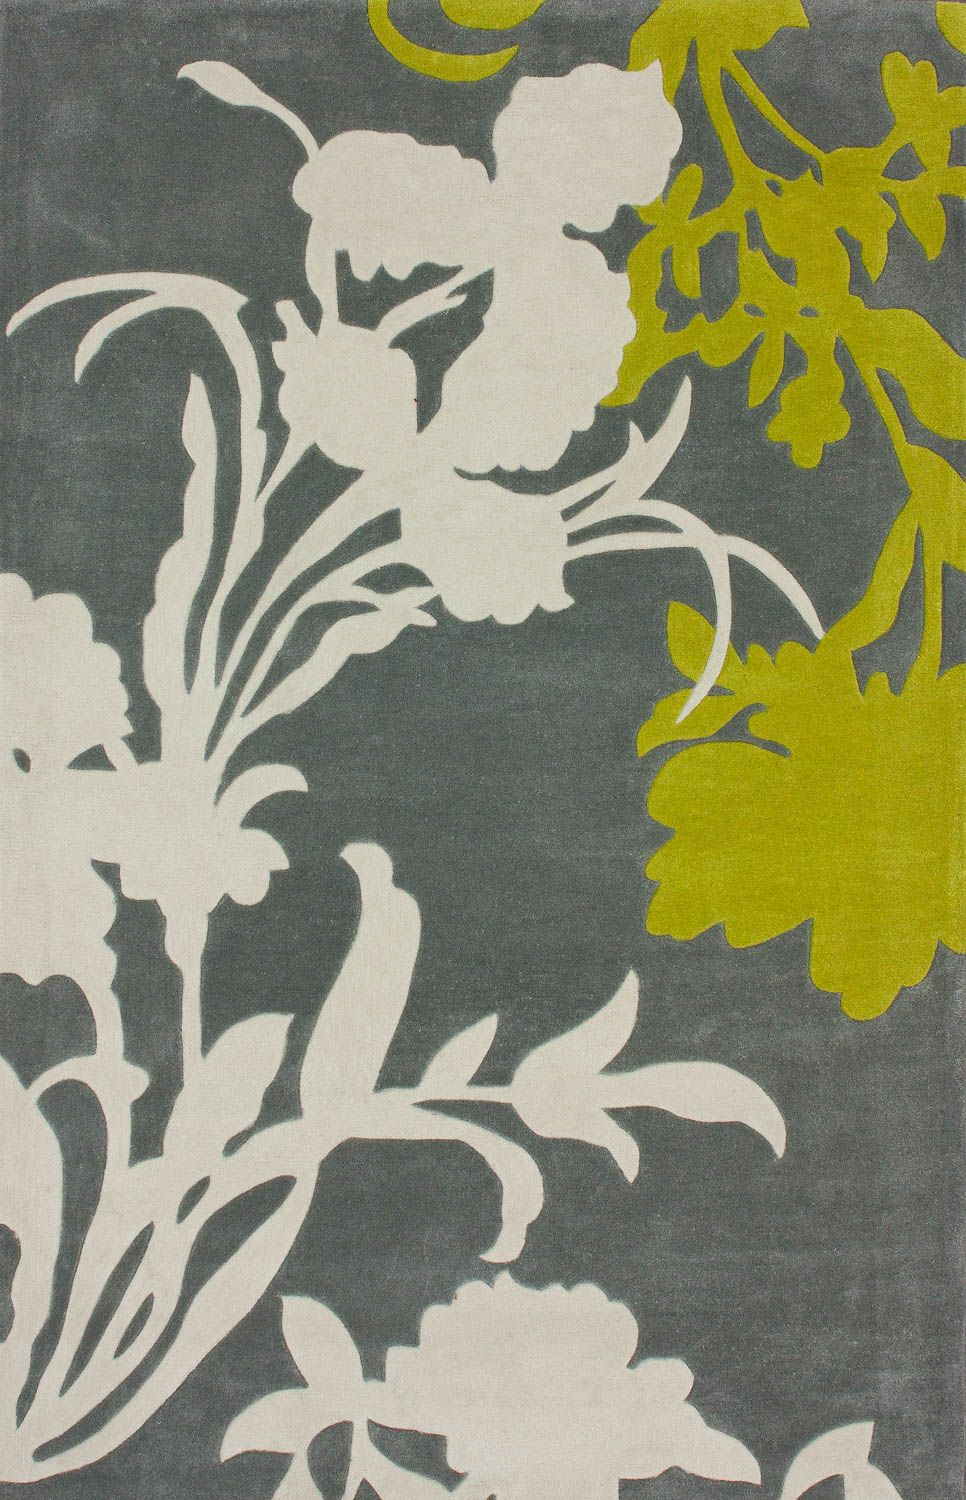 Rugs USA Keno Transitional Floral Grey Rug. Rugs USA Columbus Day $99 Sale! Area rug, rug, carpet, design, style, home decor, interior design, pattern, trends, home, statement, fall,design, autumn, cozy, sale, discount, interiors, house, free shipping, Halloween, fall decorations, fall crafts, fall décor, great winter, winter, warm, furniture, chair, art.